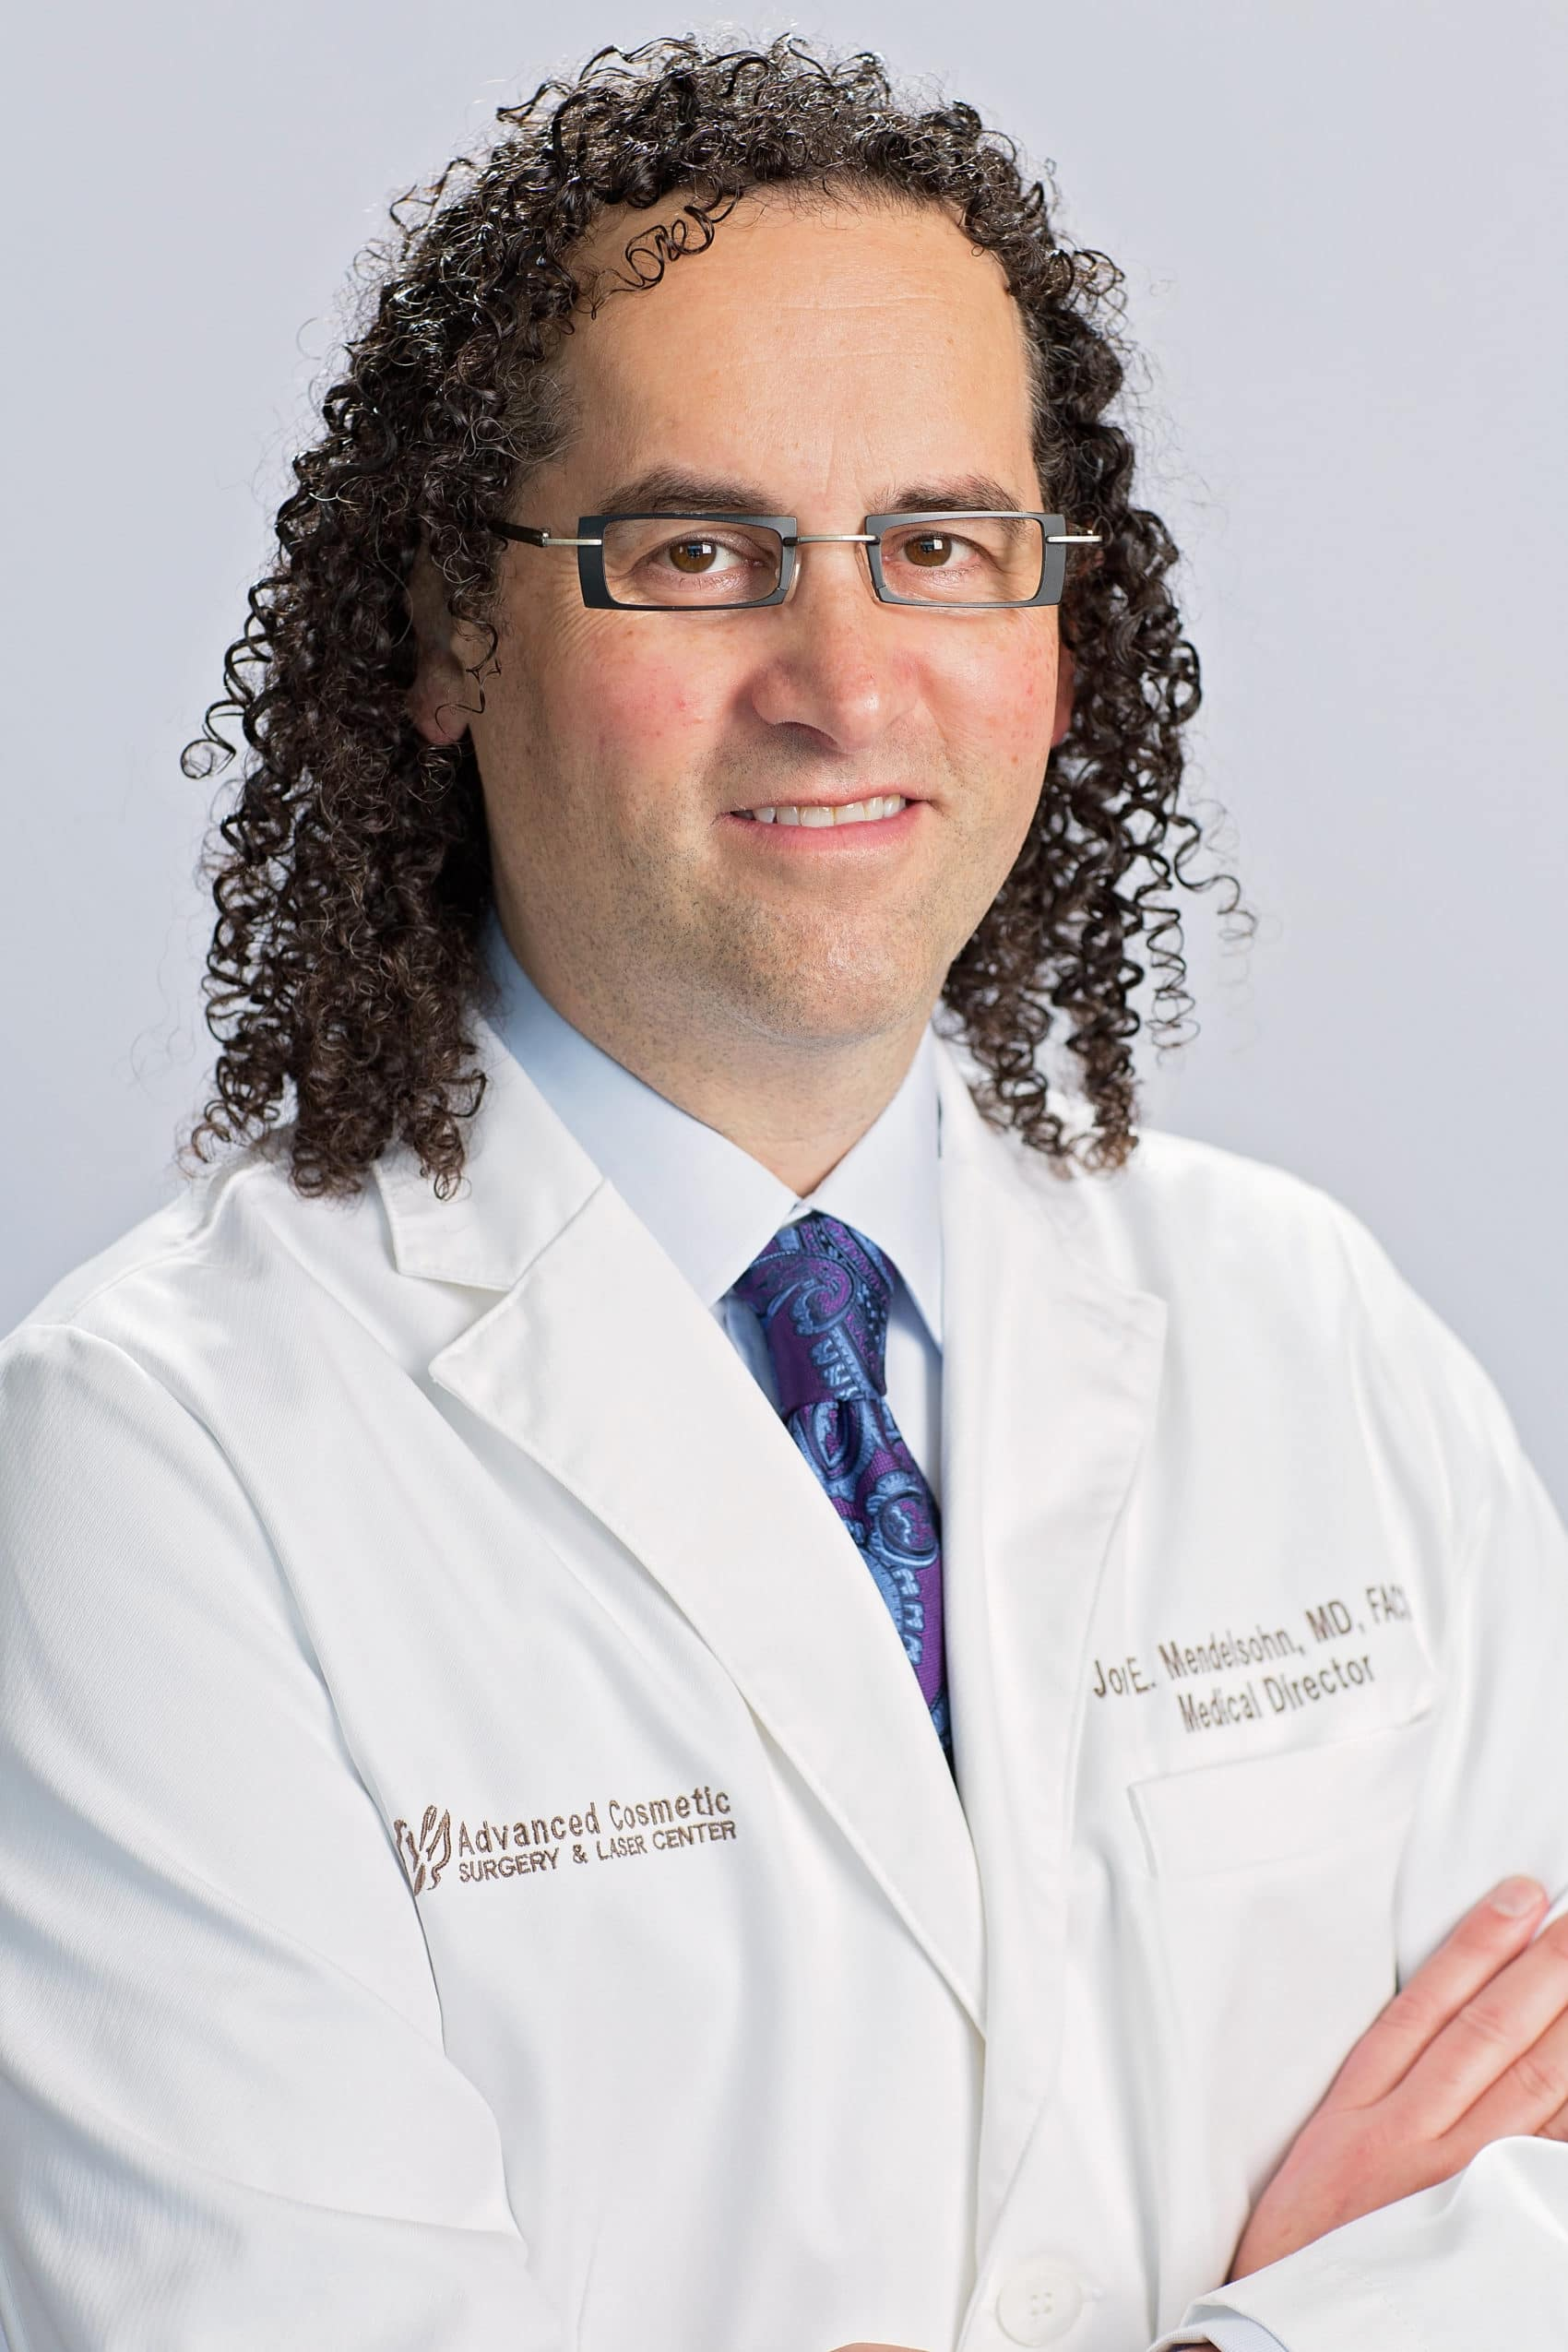 Dr. Mendelsohn - White Coat